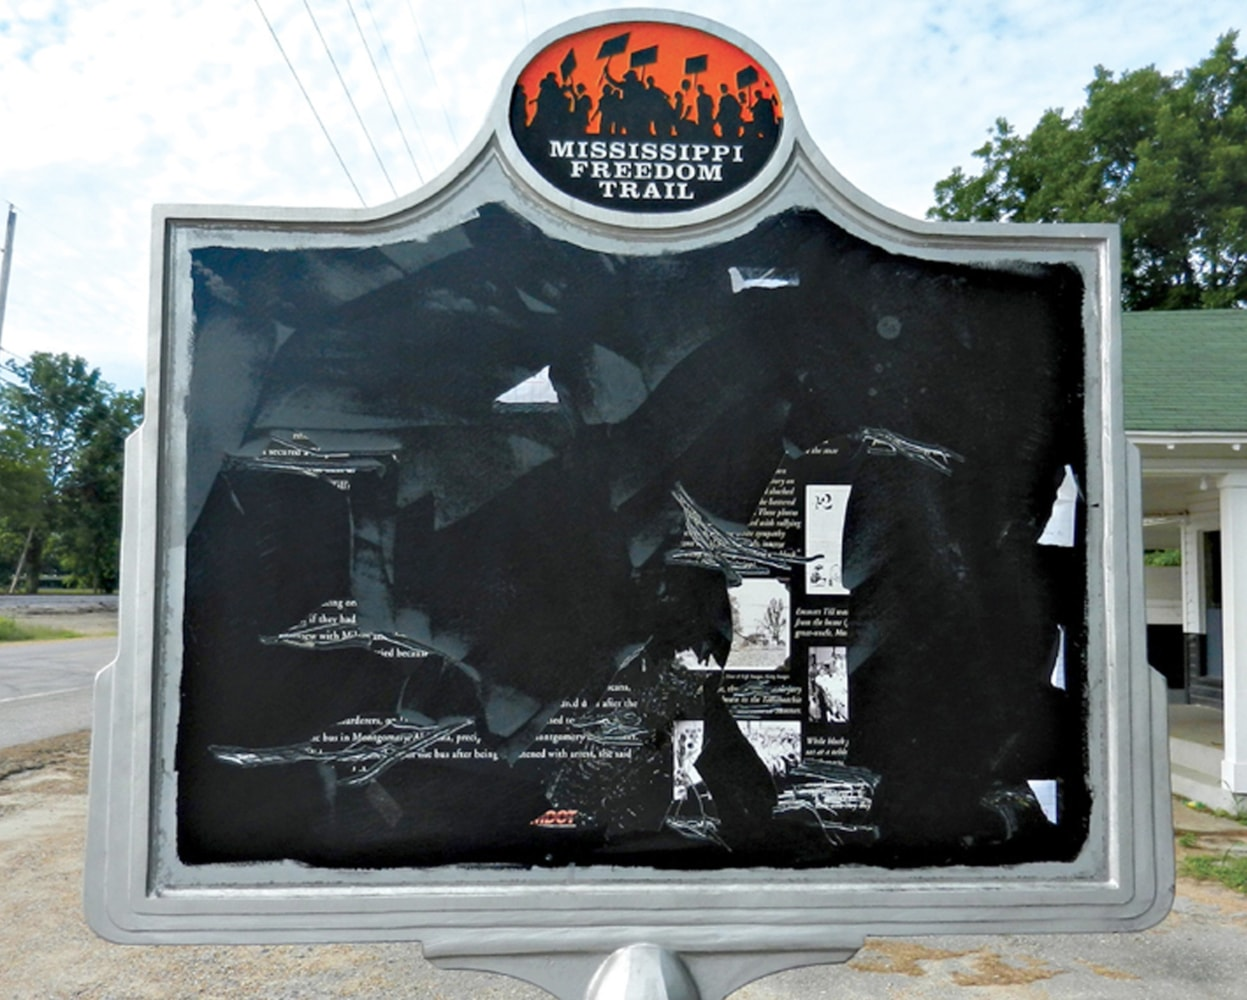 A Historical Emmett Till Marker in Mississippi Was Vandalized